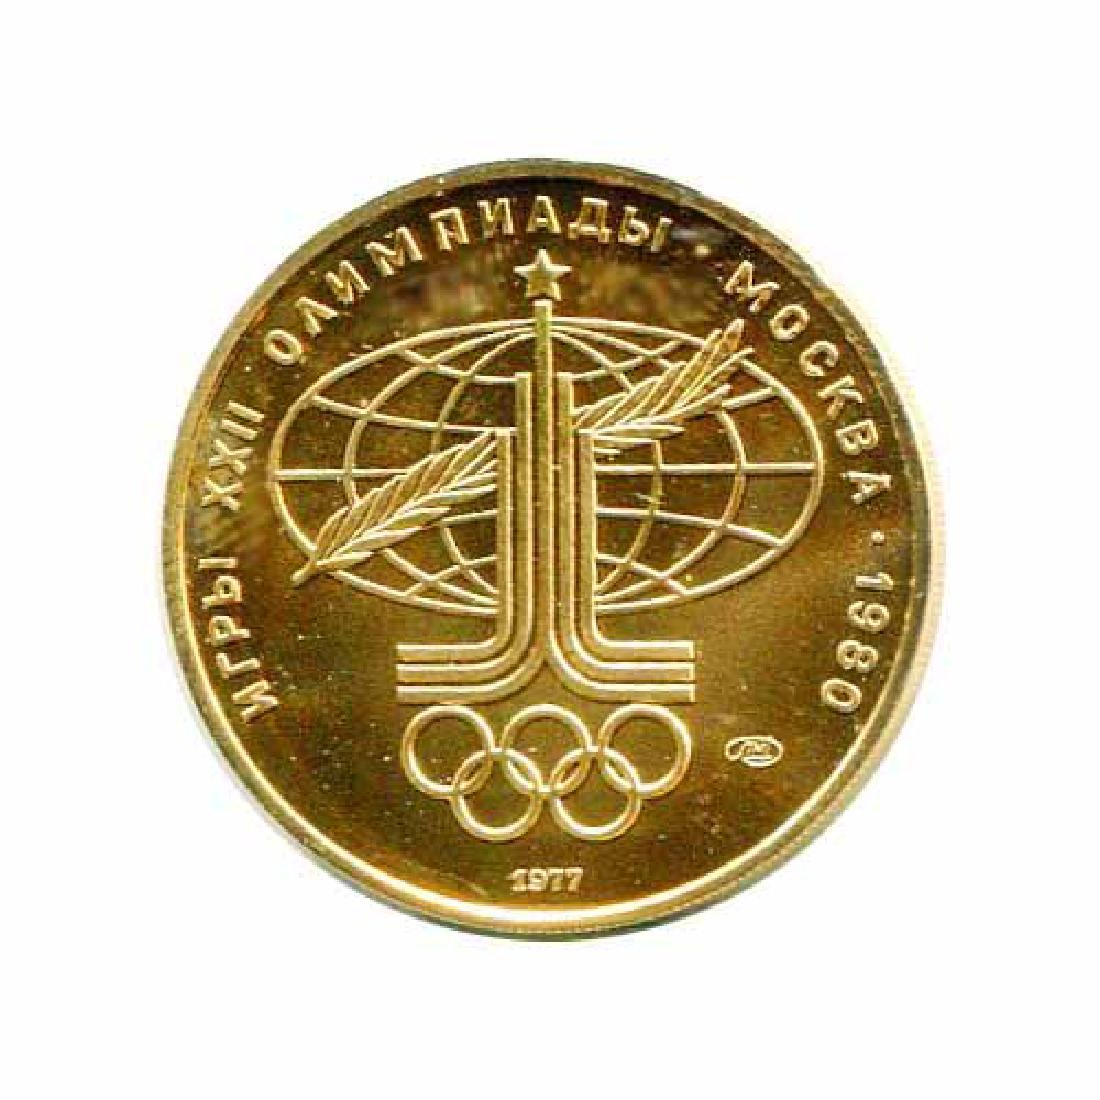 Russia 100 Roubles Gold BU 1977 Olympic Logo